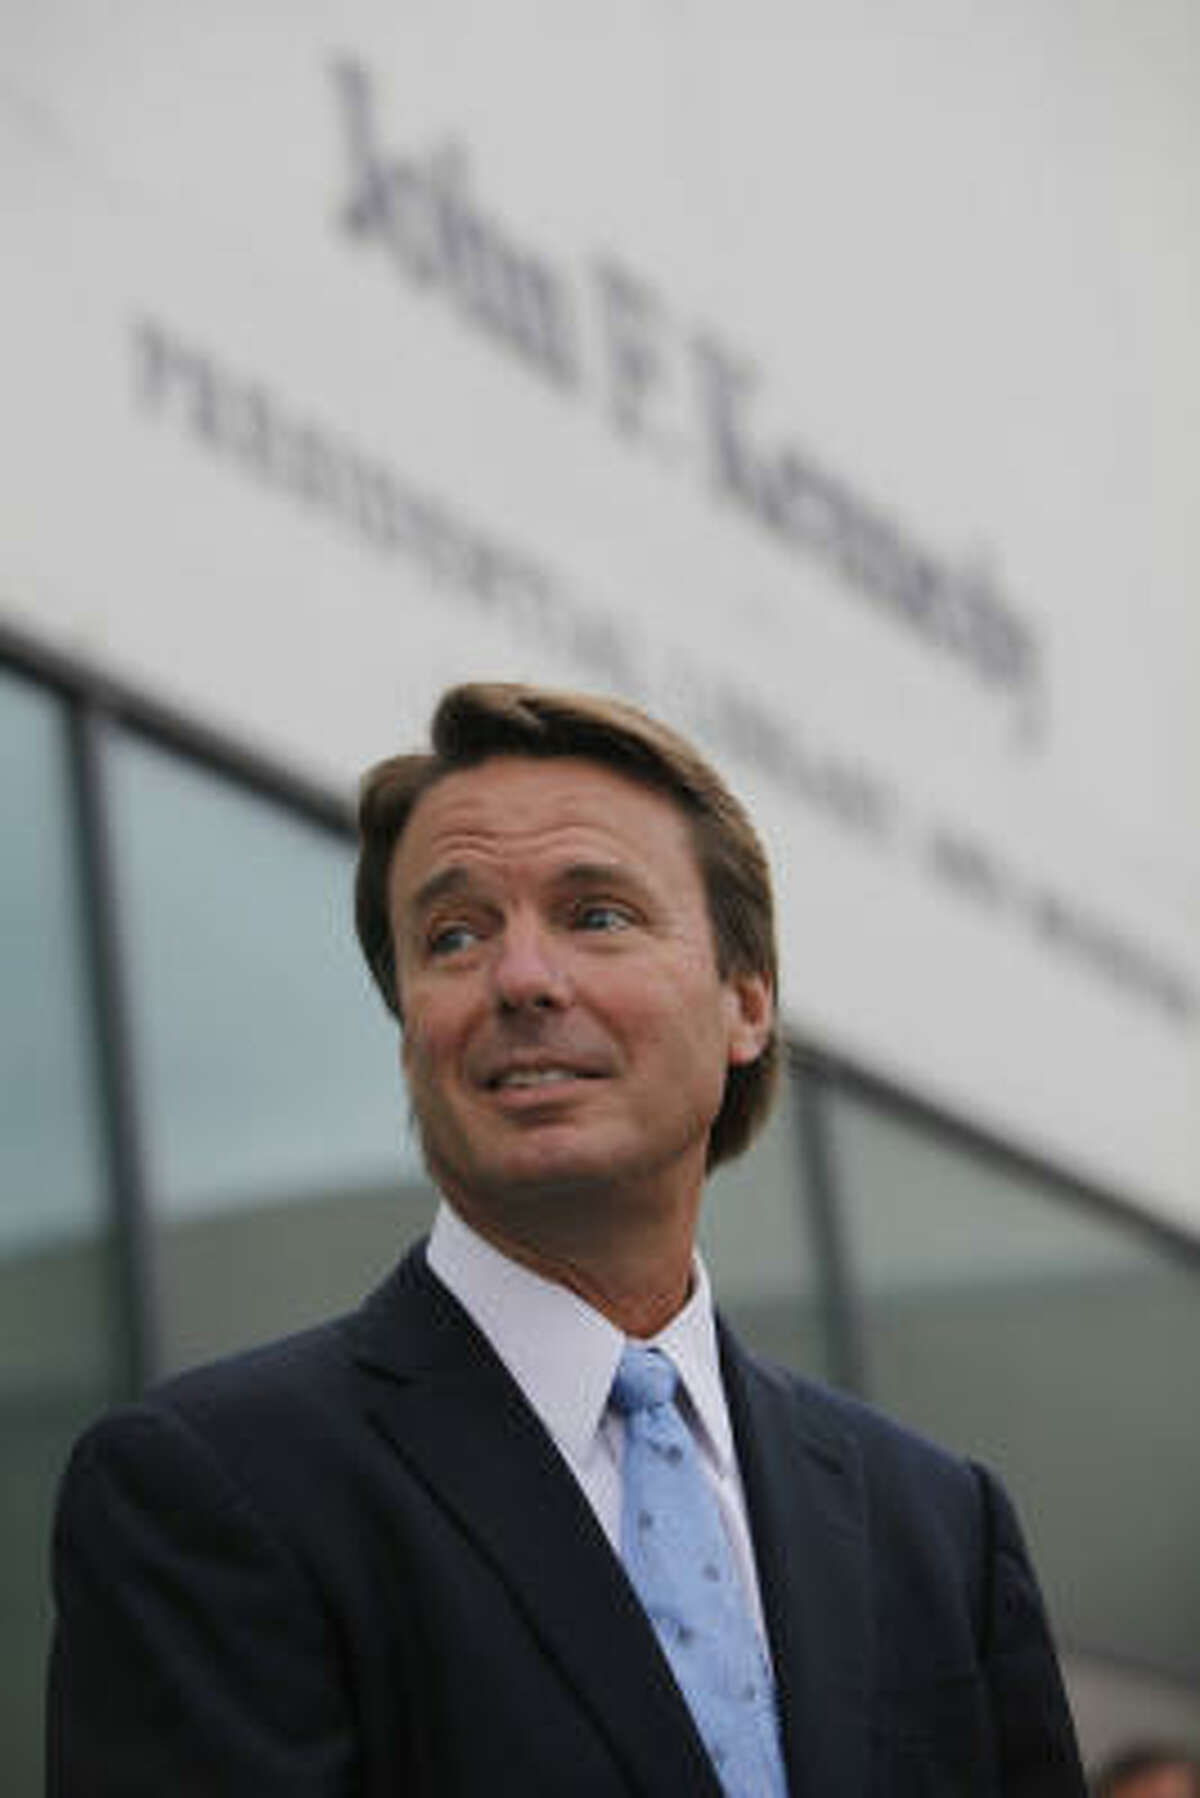 John Edwards, former democratic senator to North Carolina, fessed up to having an affair with a campaign worker on his staff for the 2008 presidential elections. All this while his wife has cancer.